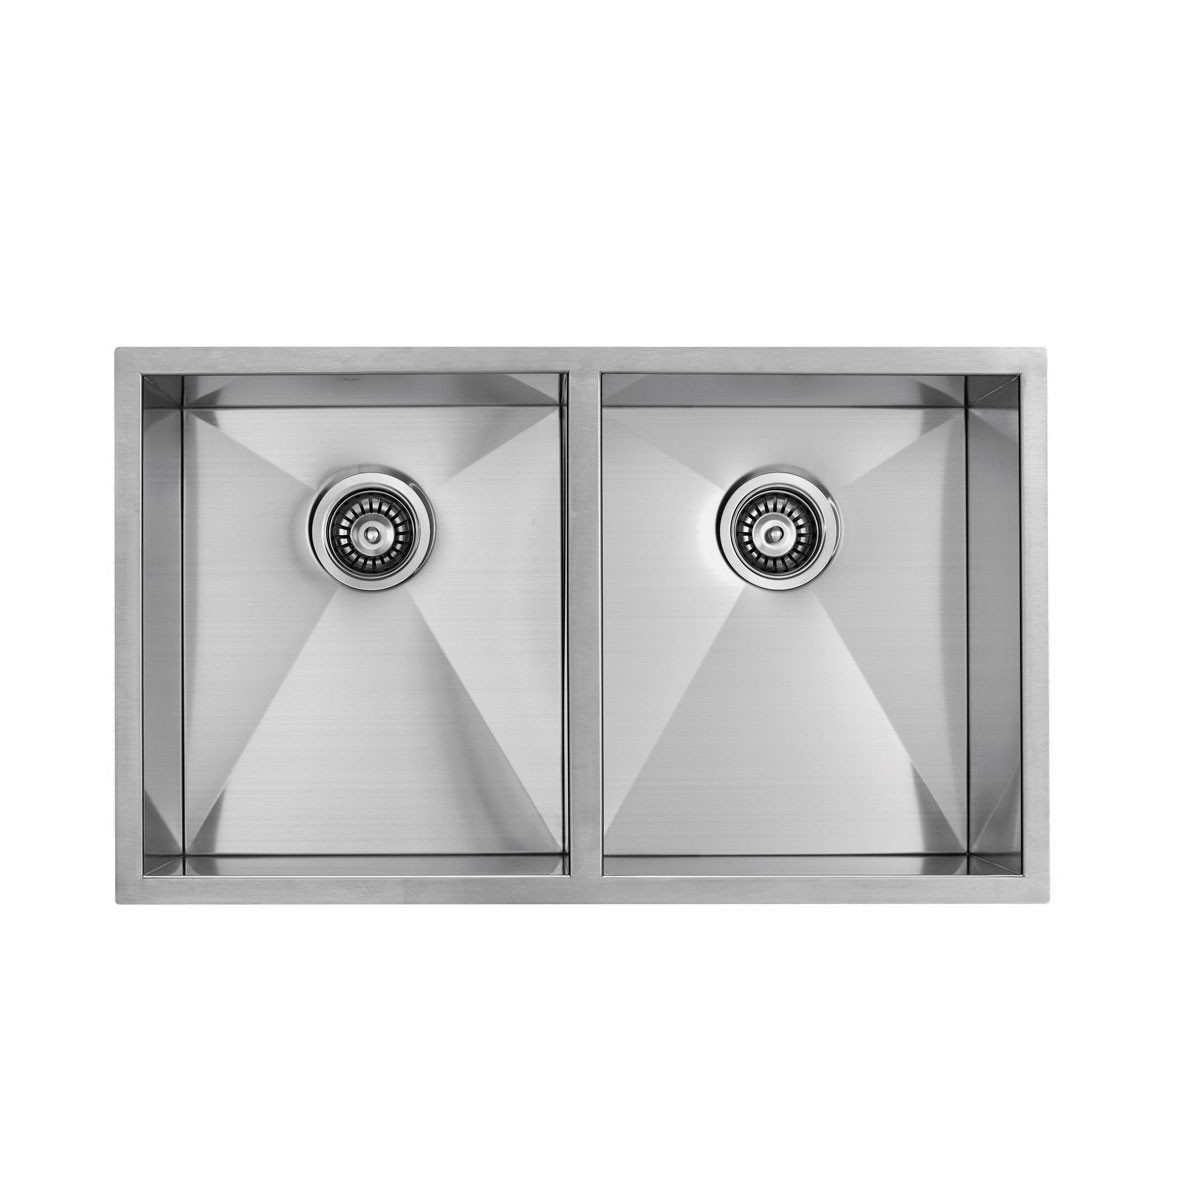 Stainless Steel Double Bowl Kitchen Sink (D3322-R0)